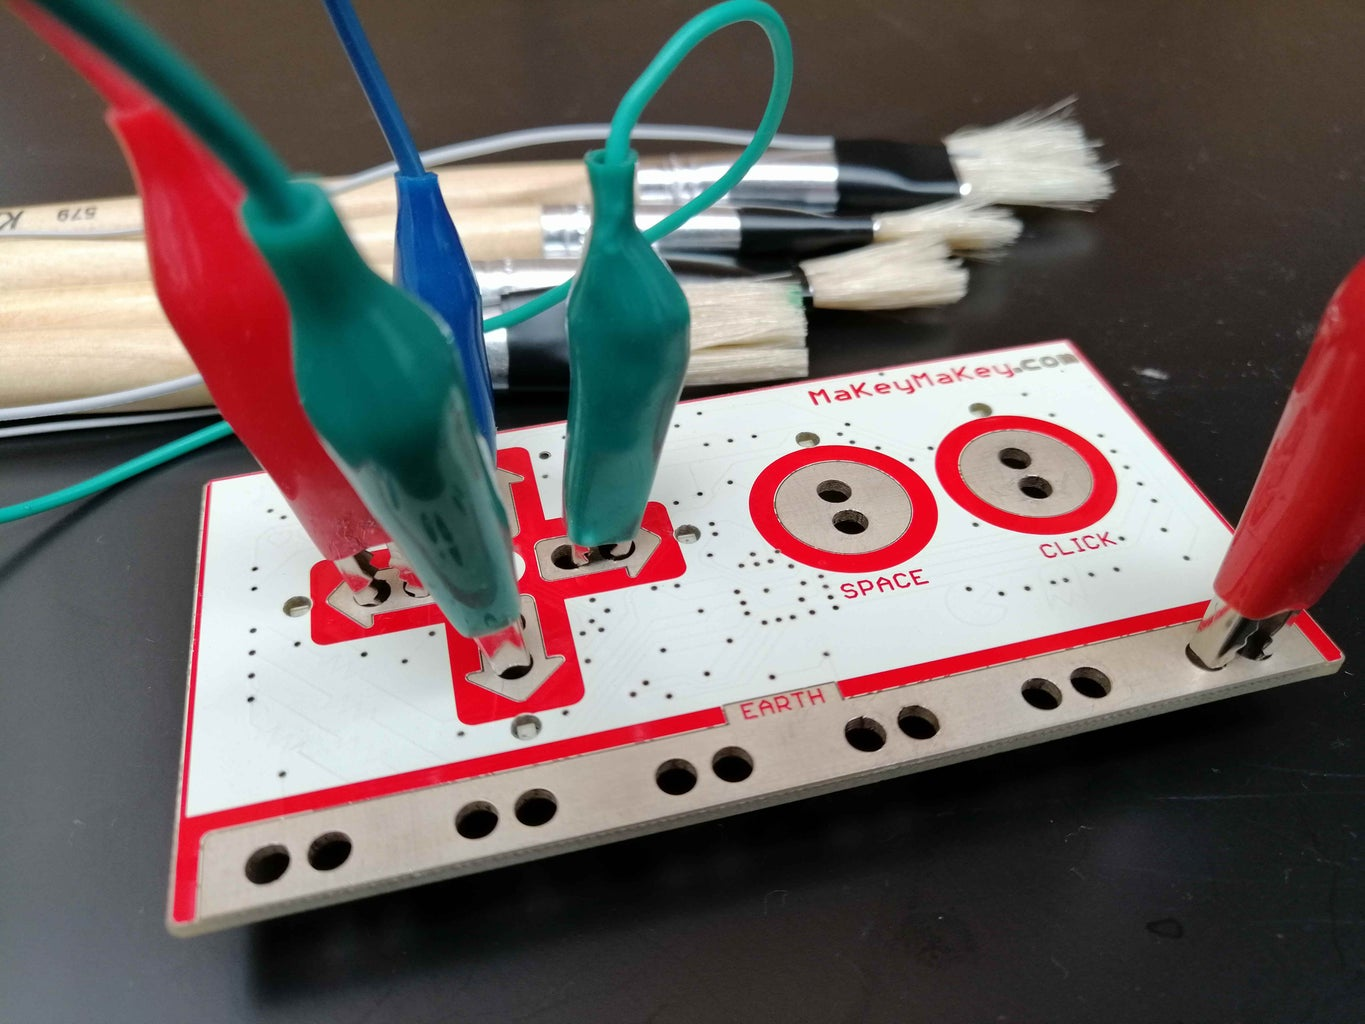 Connections to the Makey Makey